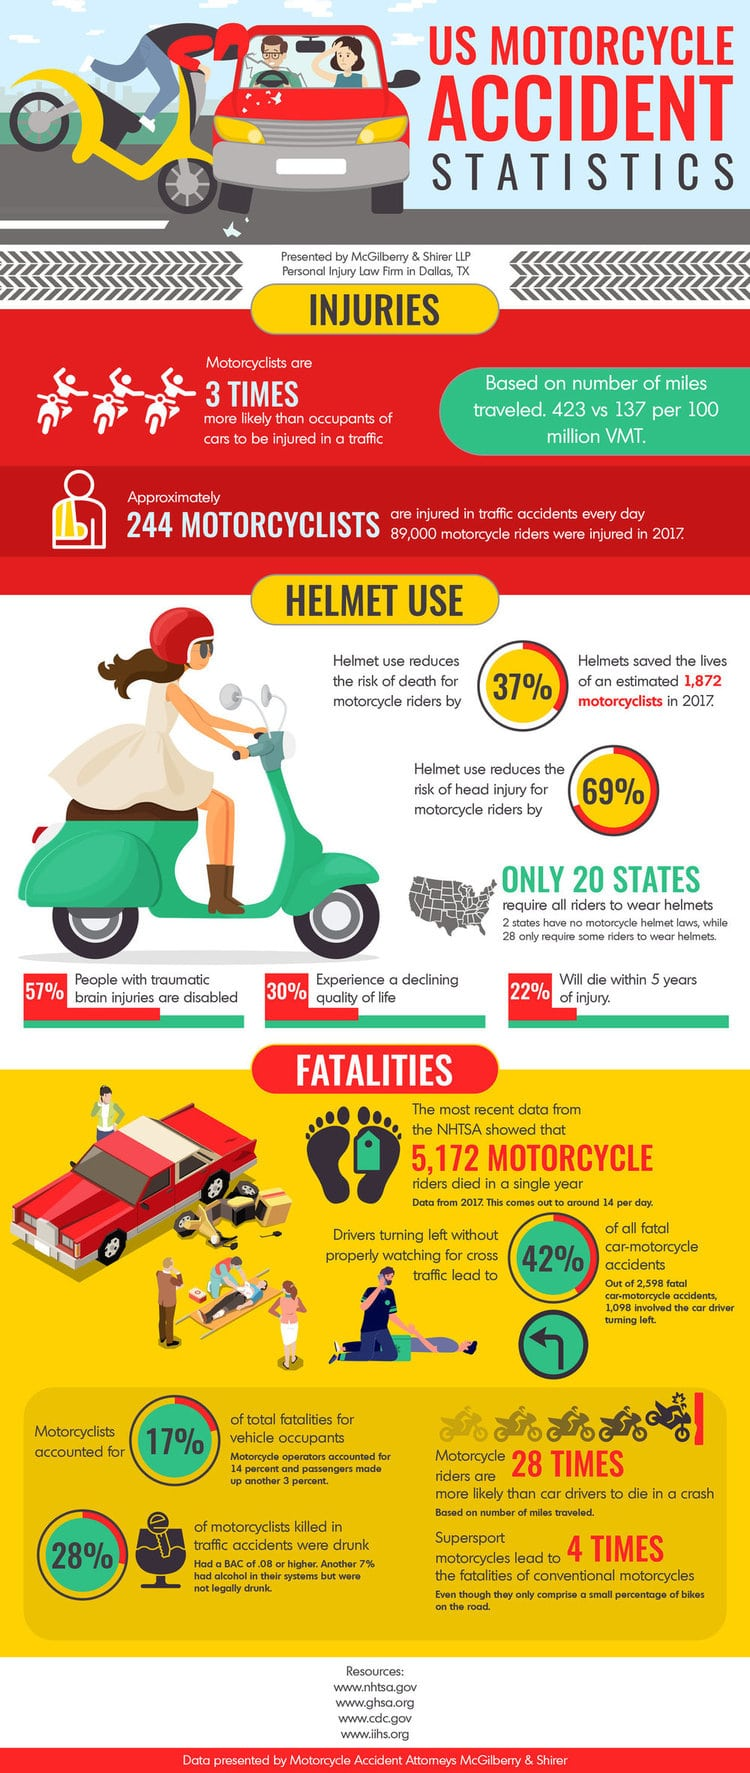 Detailed motorcycle accident statistics for the United States, compiled from the most respected resources, containing facts about motorcycle injuries, helmet use, and fatalities